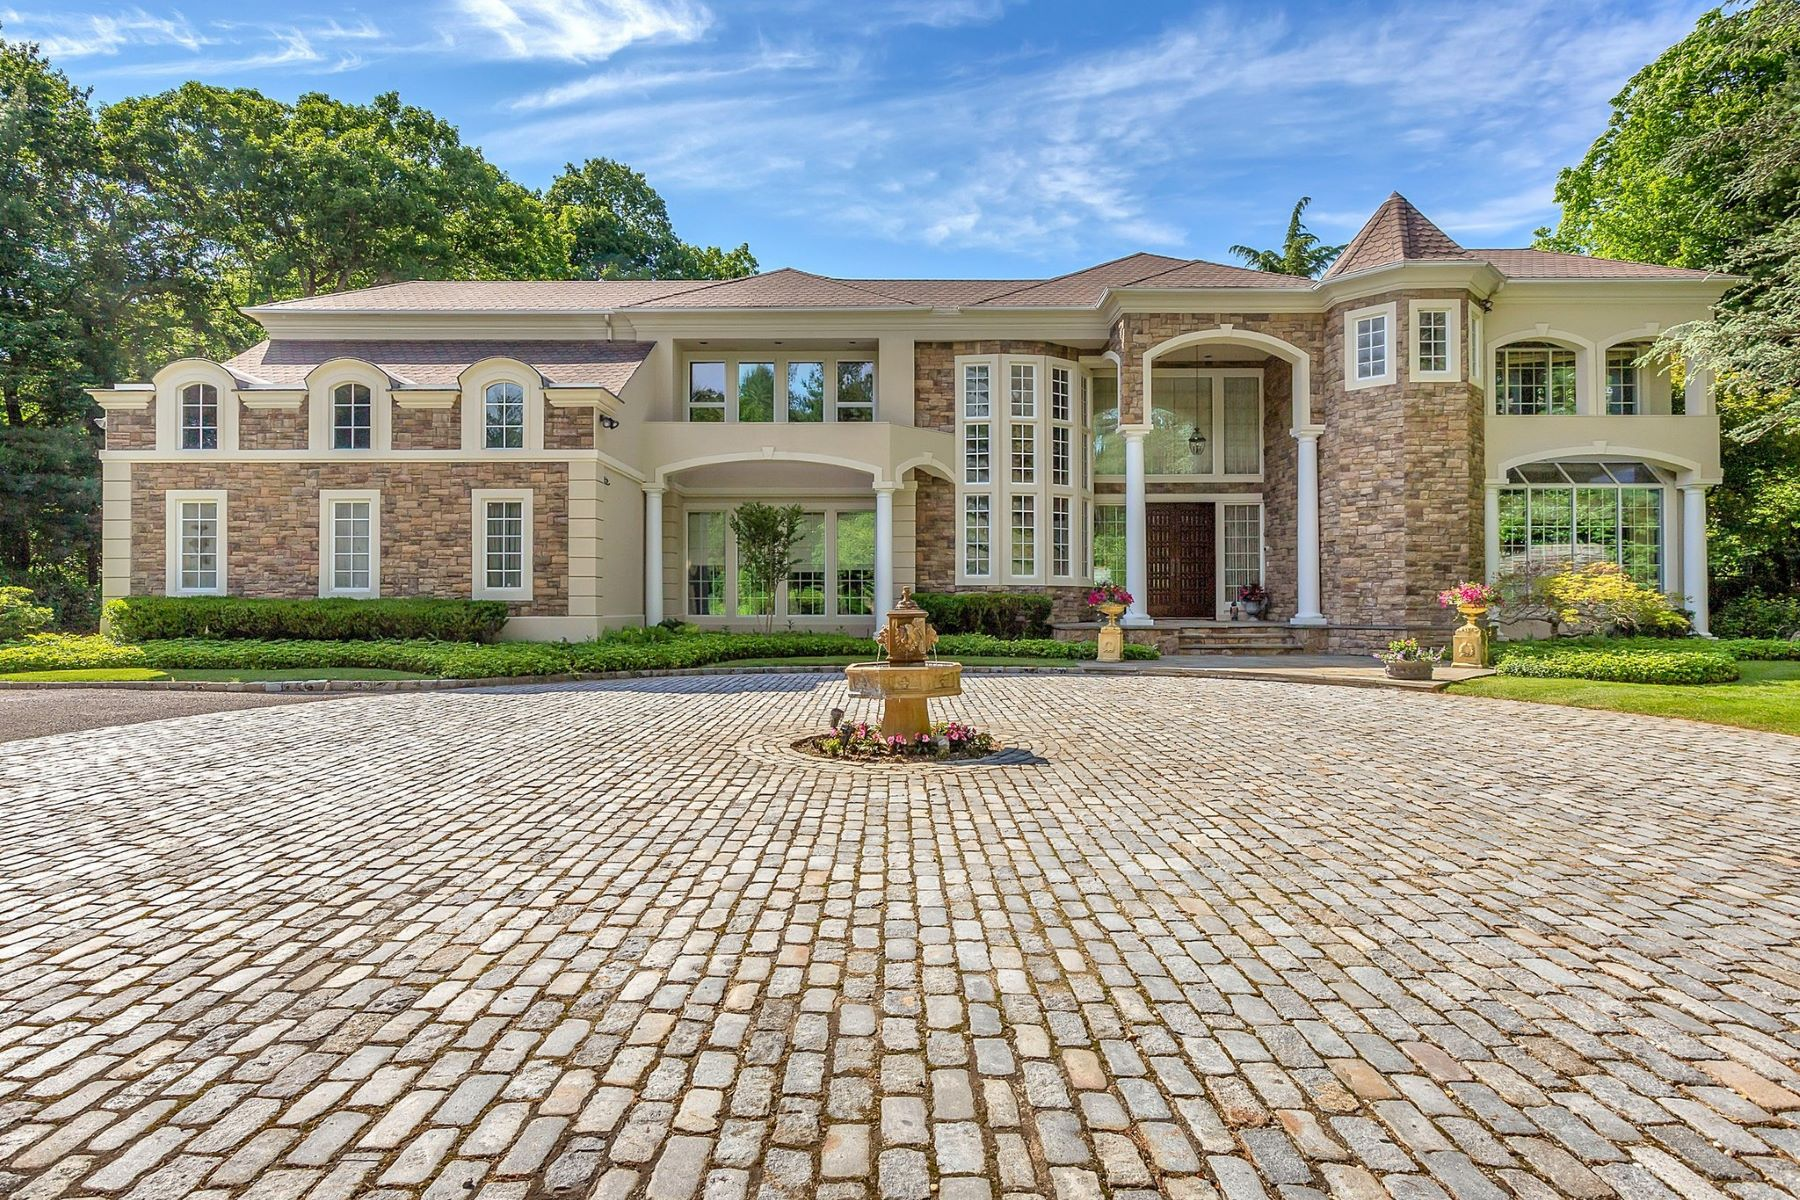 Single Family Homes for Active at Syosset 55 Coves Run Oyster Bay Cove, New York 11791 United States